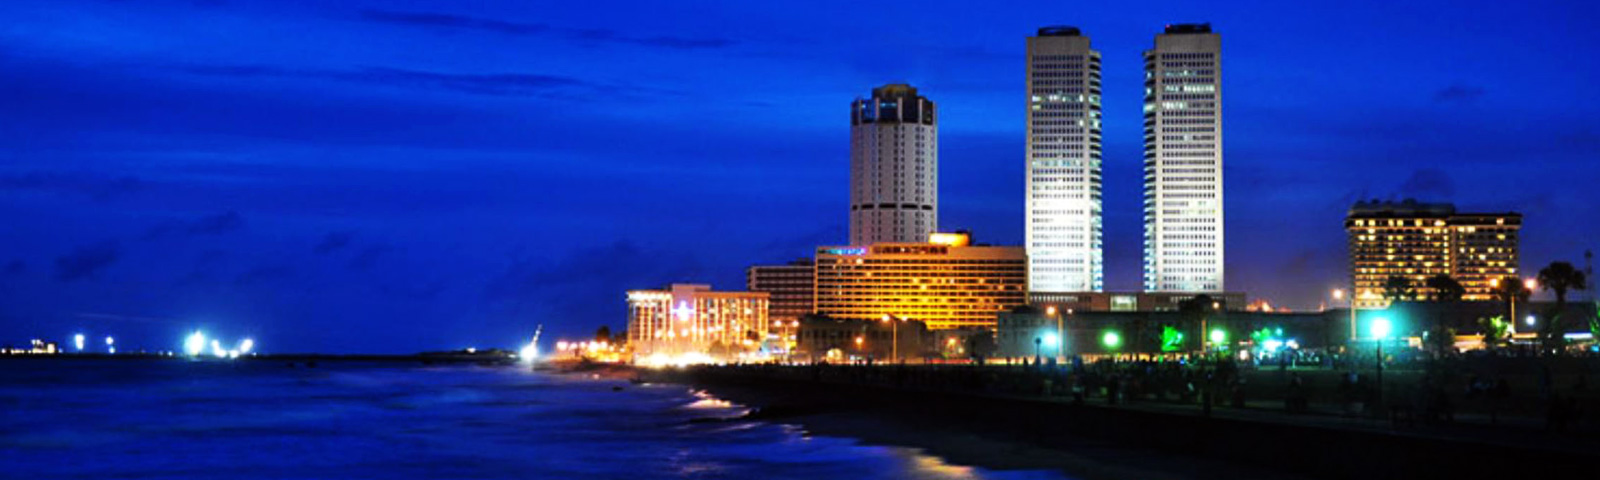 colombo_night